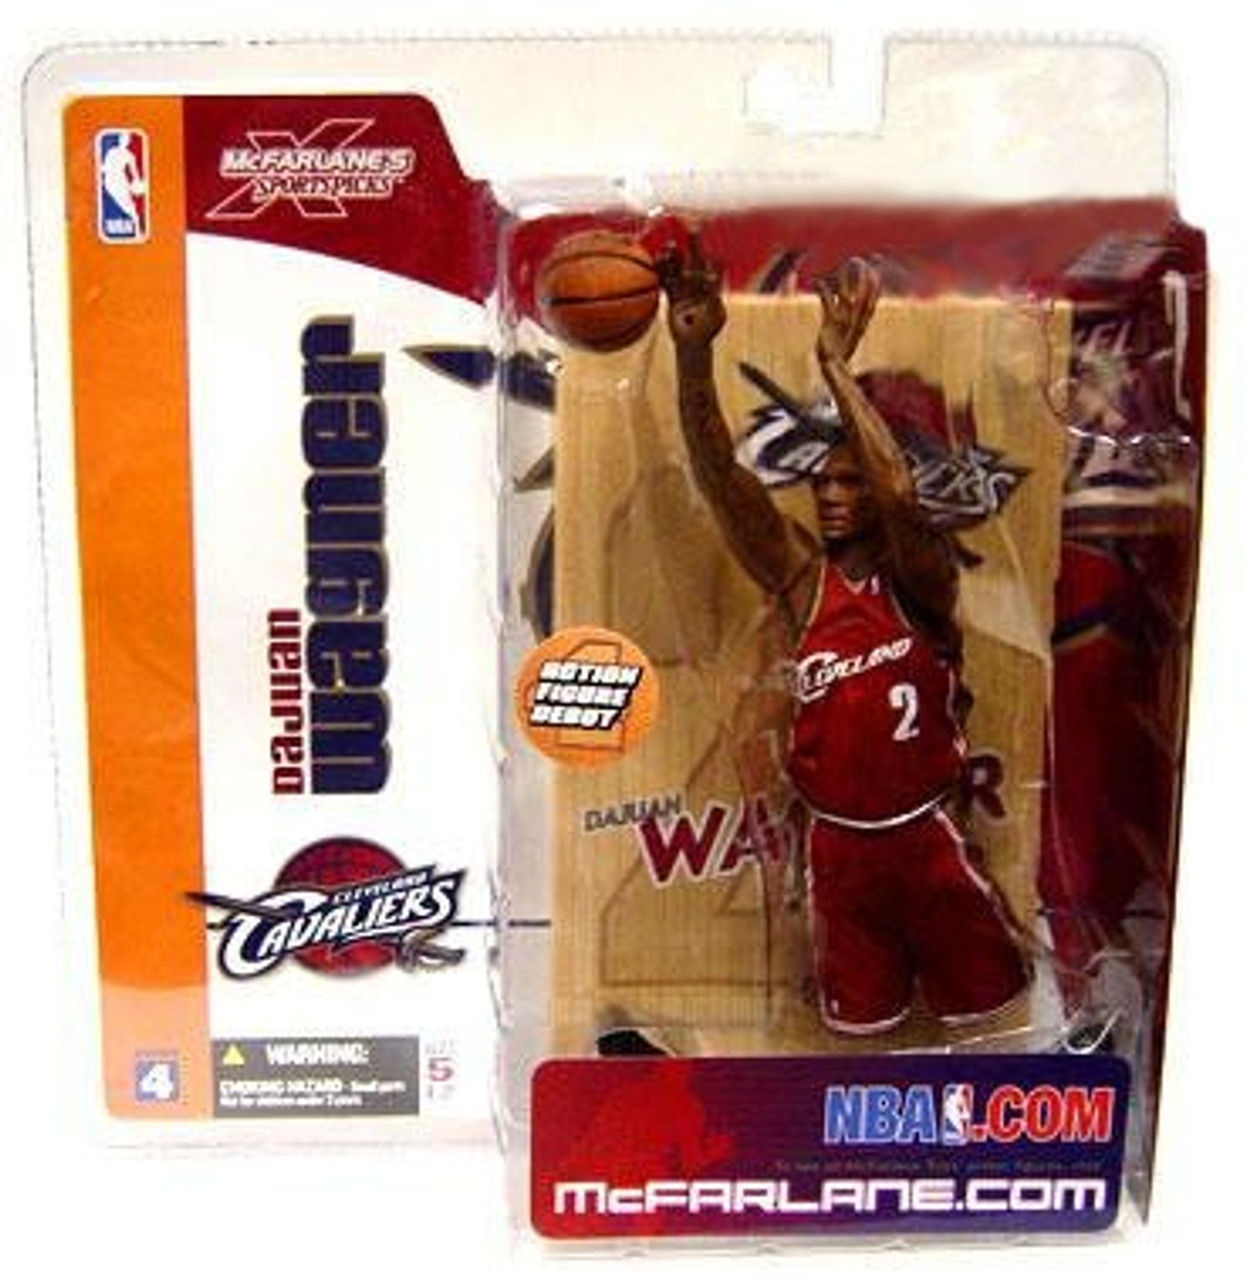 McFarlane Toys NBA Cleveland Cavaliers Sports Picks Series 4 Dajuan Wagner Action Figure [Red Jersey]